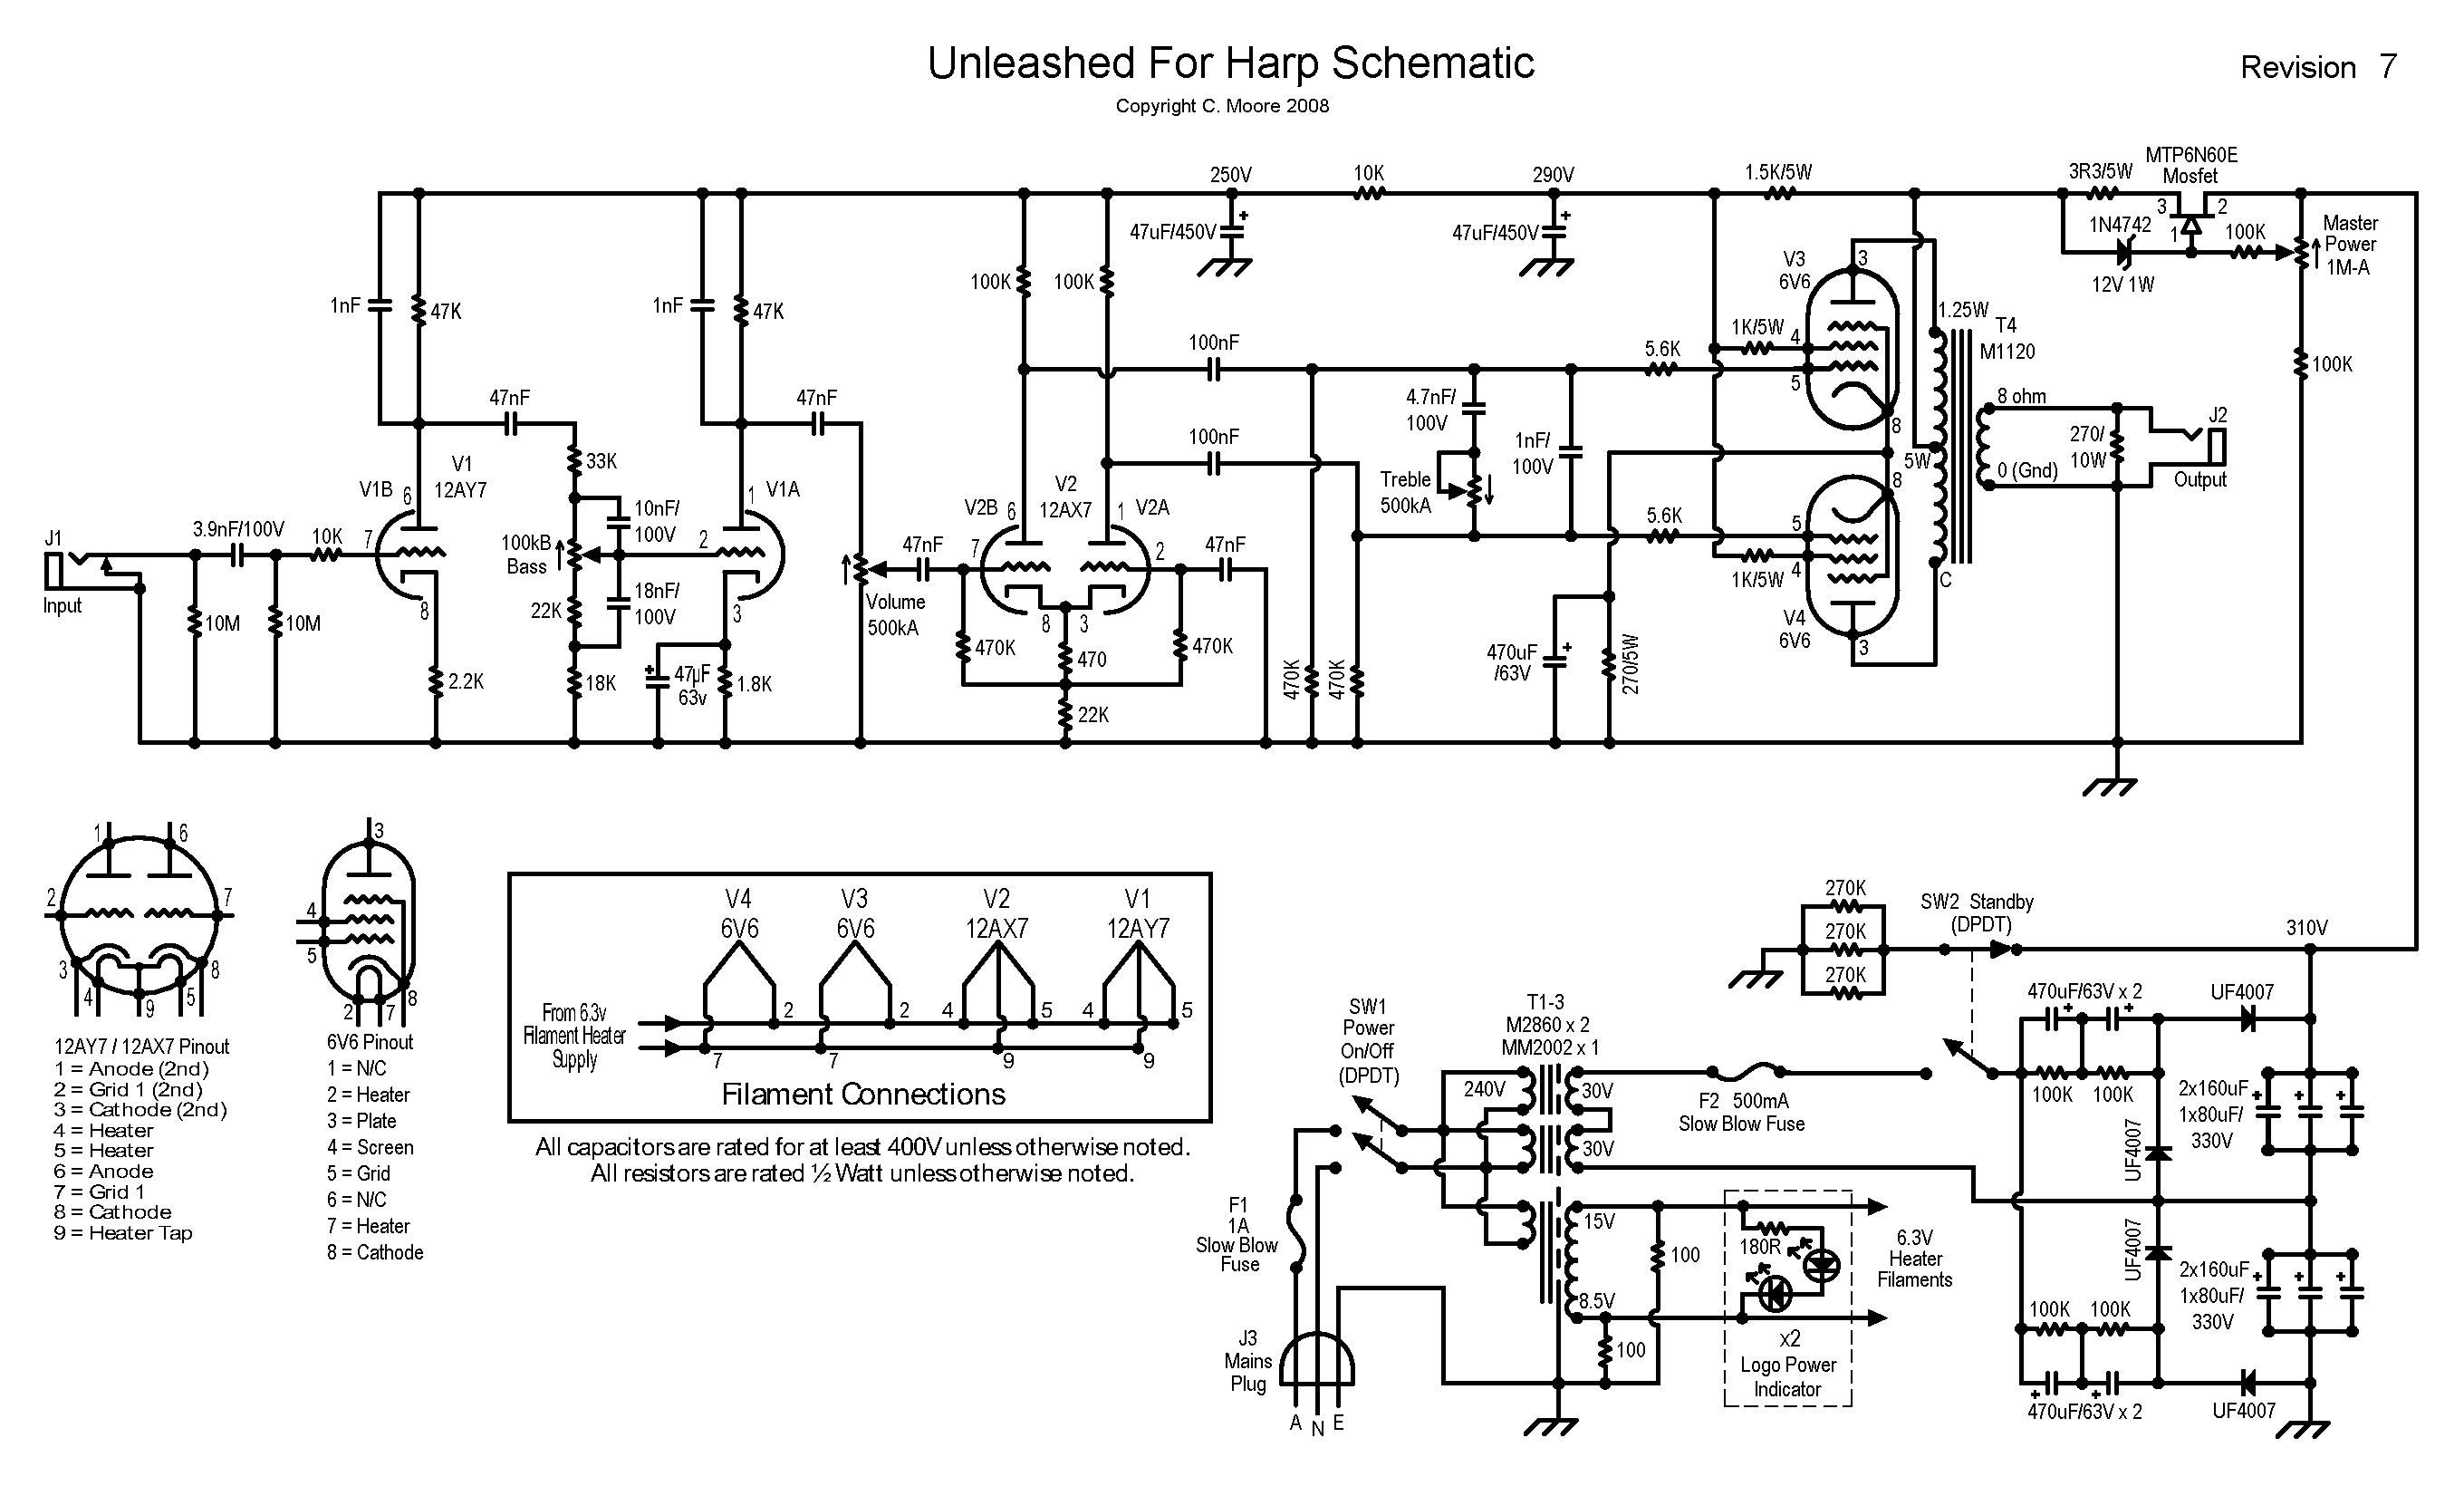 70 Watt Metal Halide Ballast Wiring Diagram furthermore 483941 Adding 2 Sets Fluorescent Lights My Garage together with Ava100harp in addition Circline Ballast Wiring Diagram together with Hid Ballast Wiring Diagram. on advance ballast wiring diagram